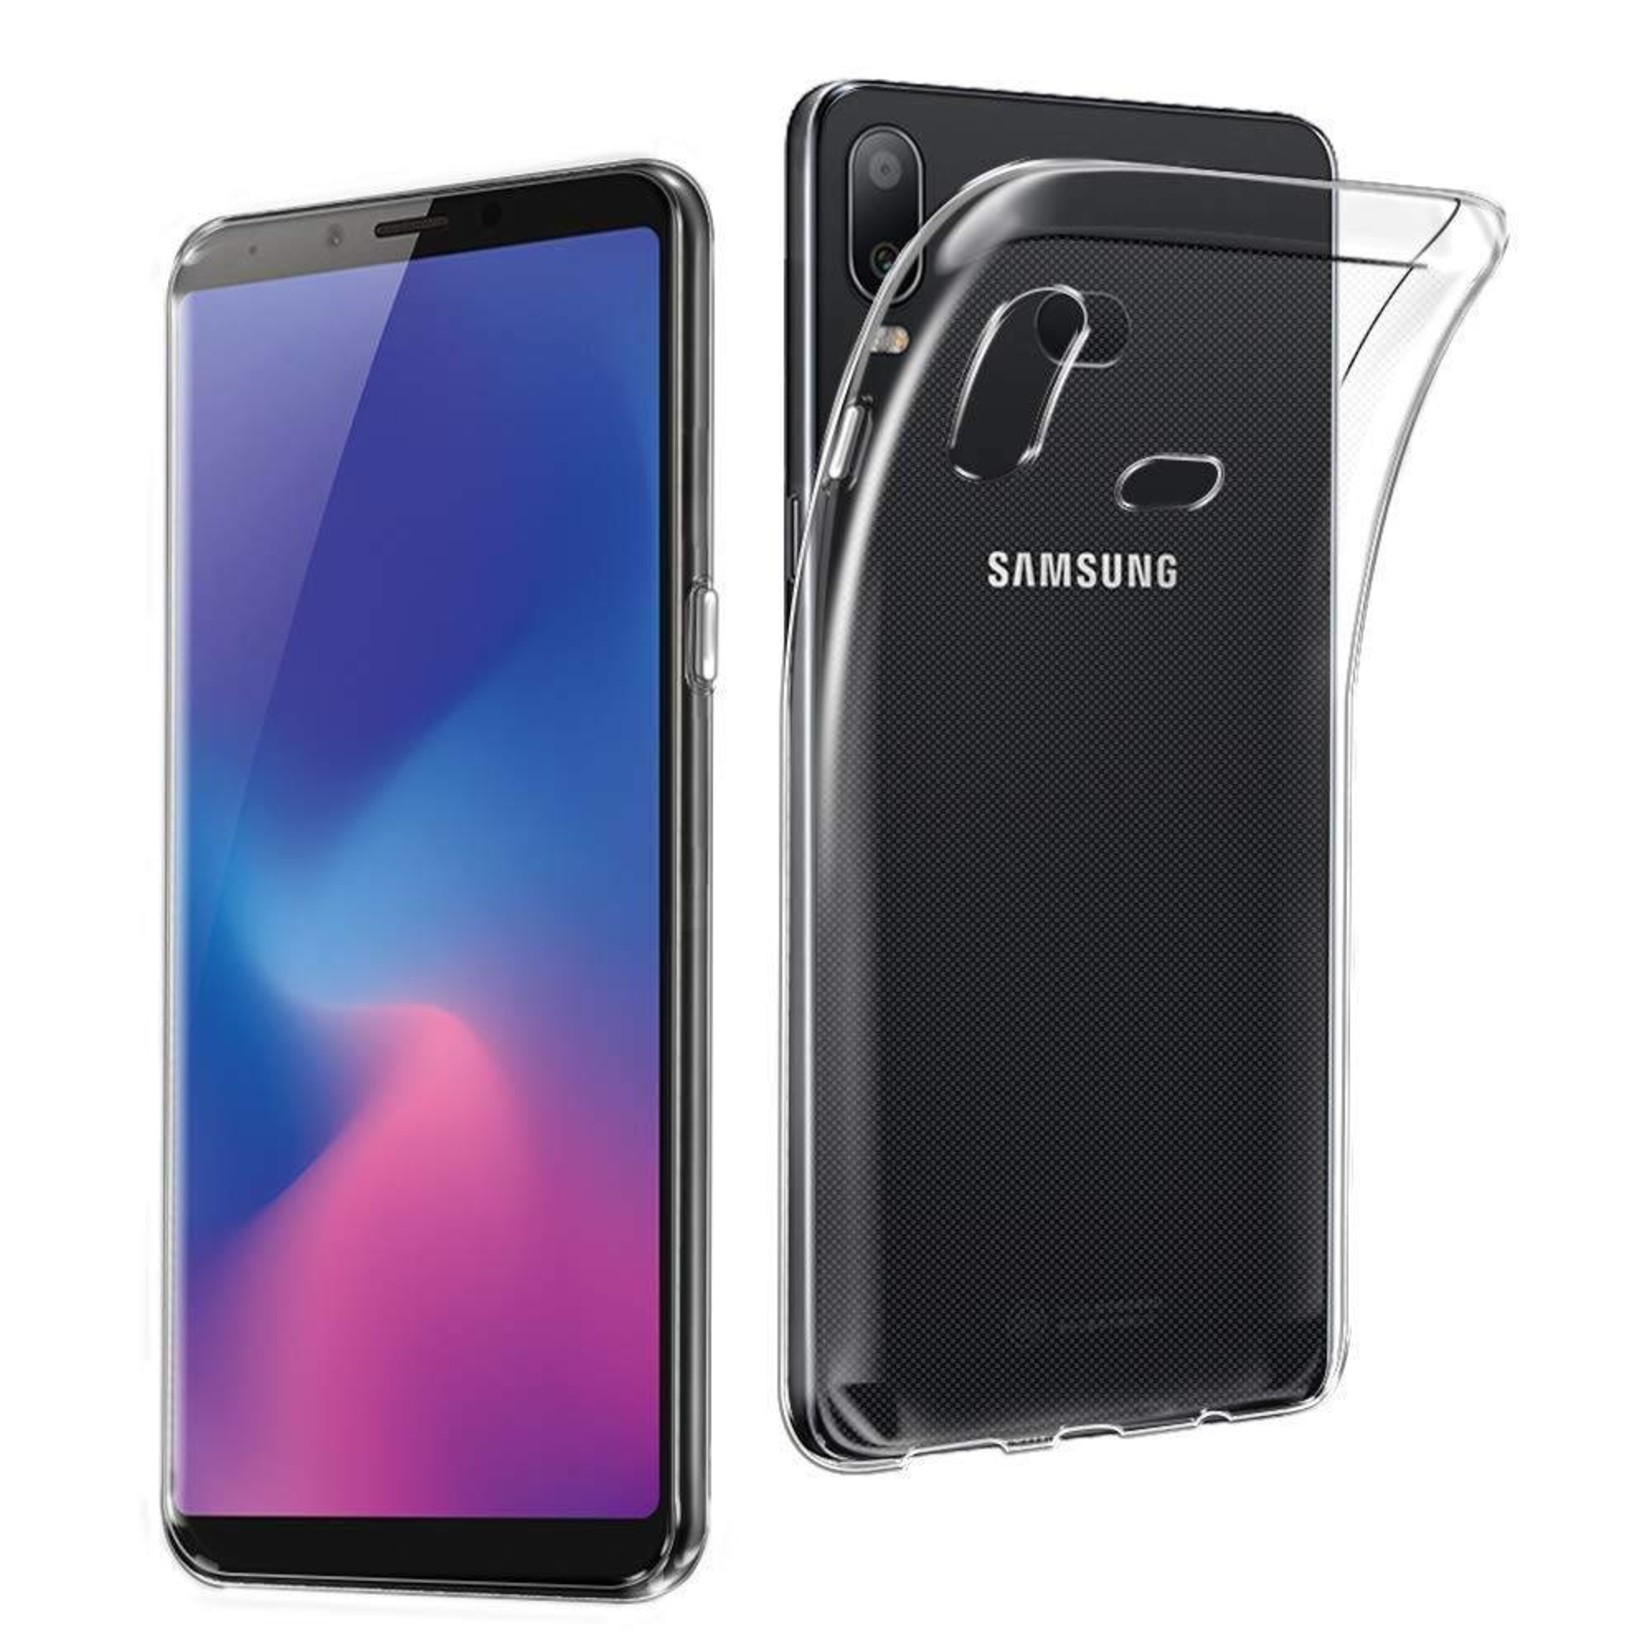 Colorfone Hoesje Coolskin3T voor Samsung A6s Transparant Wit